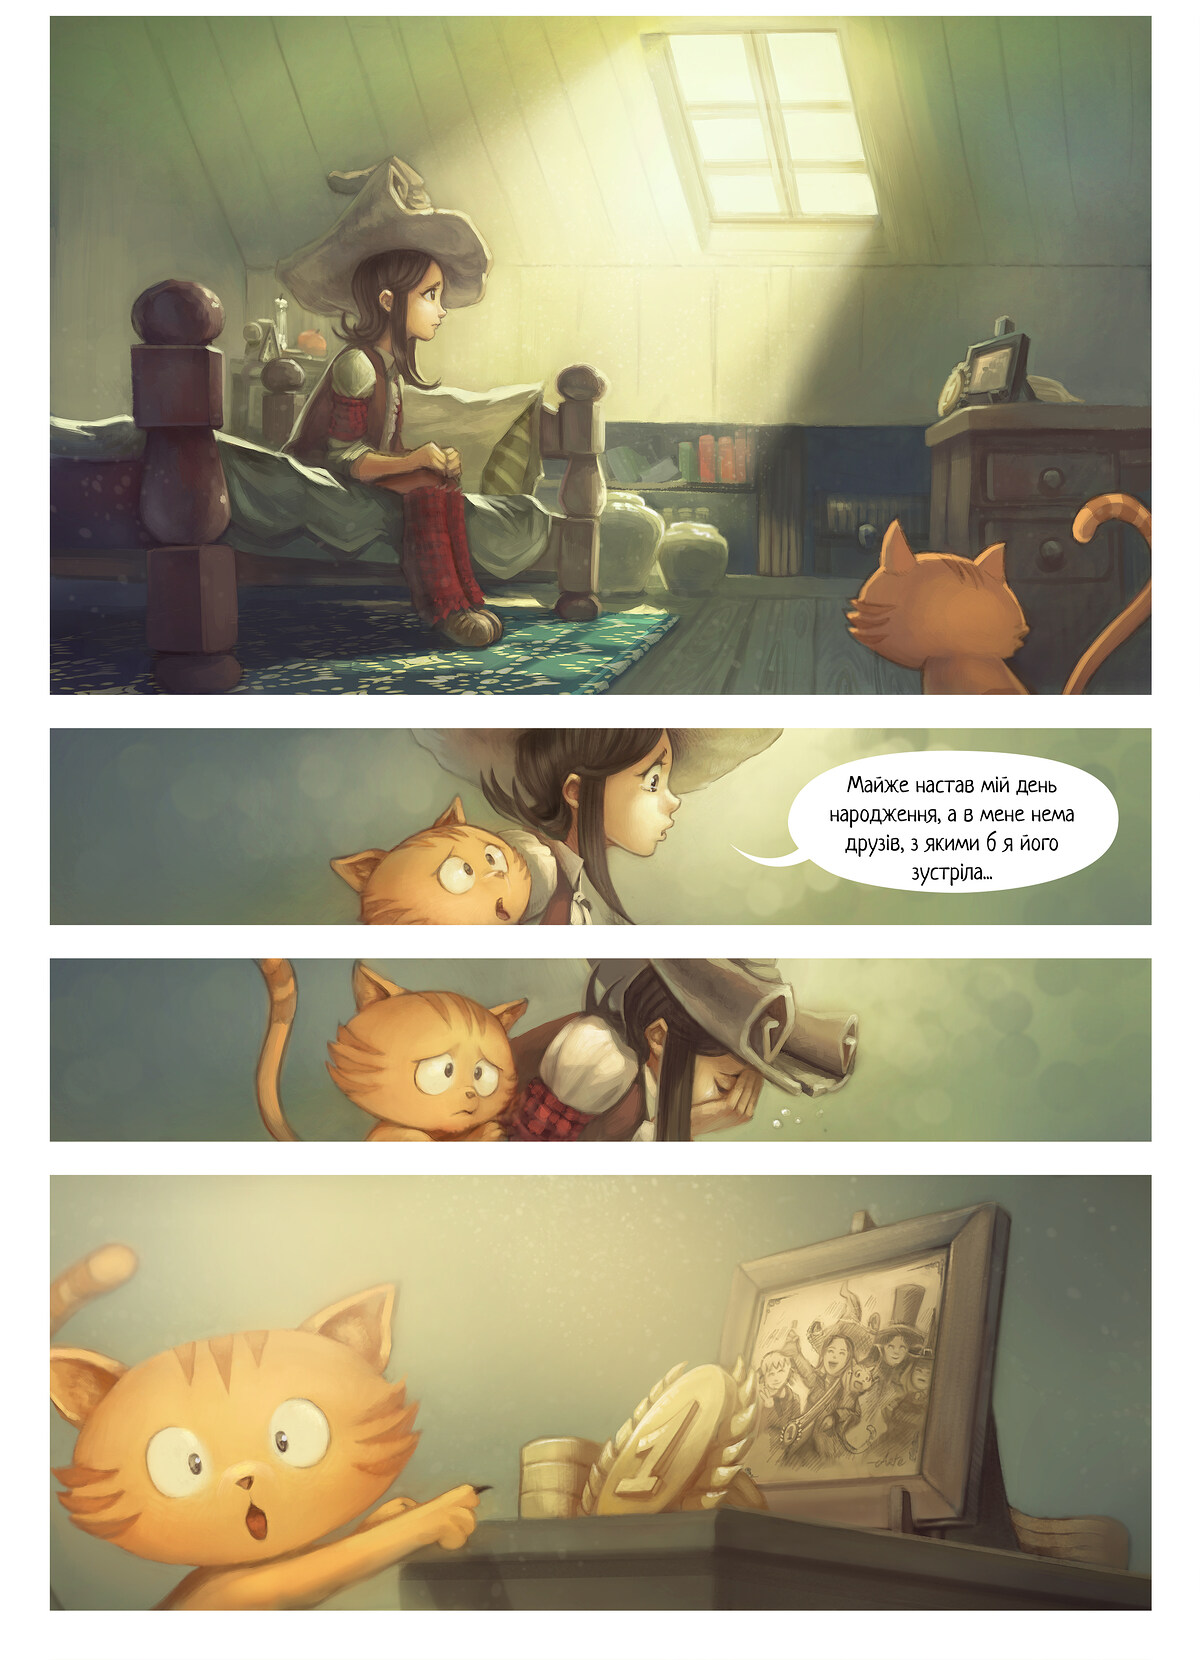 A webcomic page of Pepper&Carrot, епізод 8 [uk], стор. 1